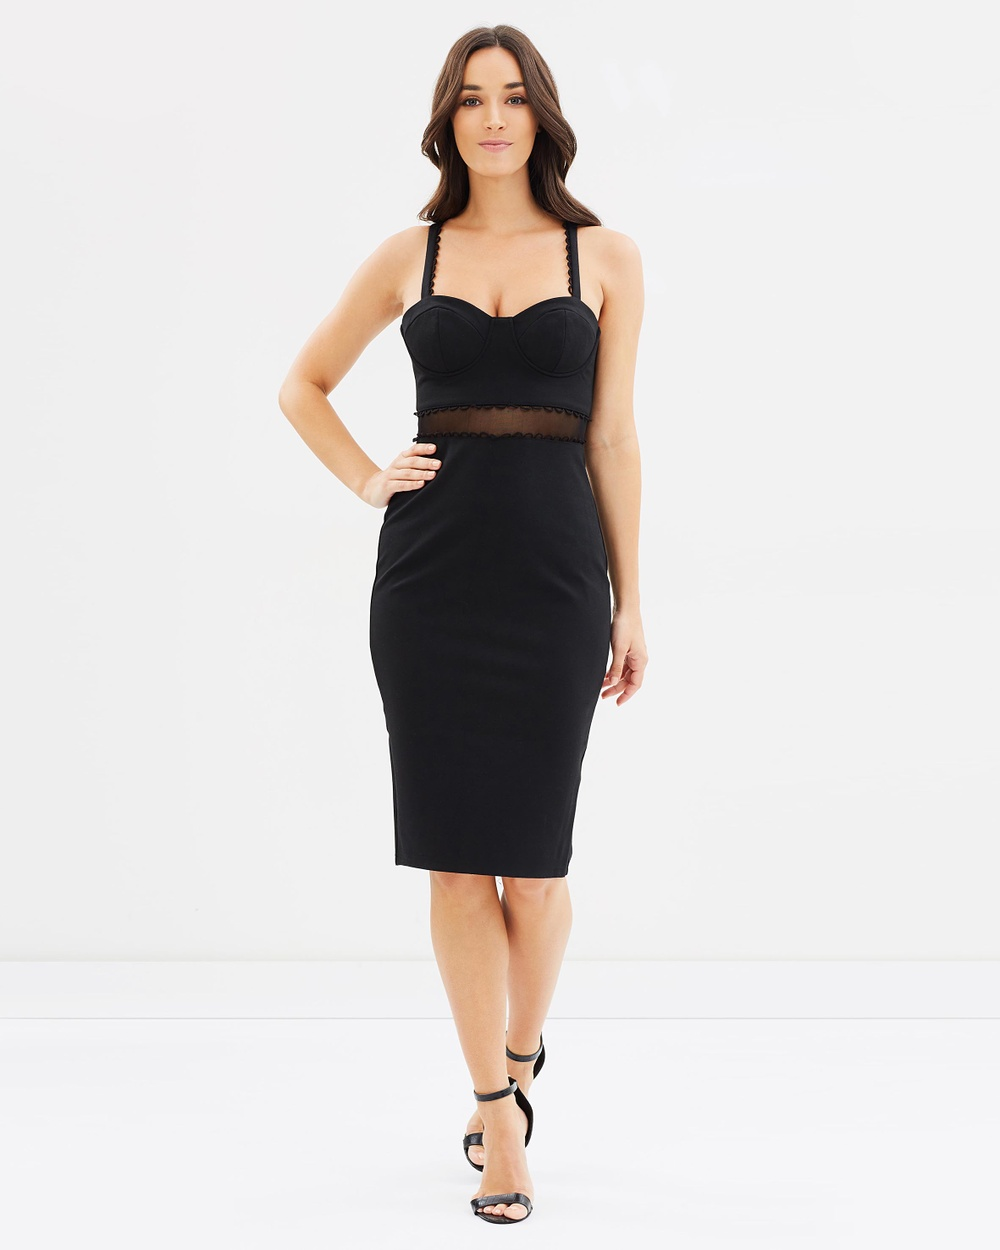 Lost Ink Sheer Waist Bust Cup Body Con Dress Bodycon Dresses Black Sheer Waist Bust Cup Body-Con Dress